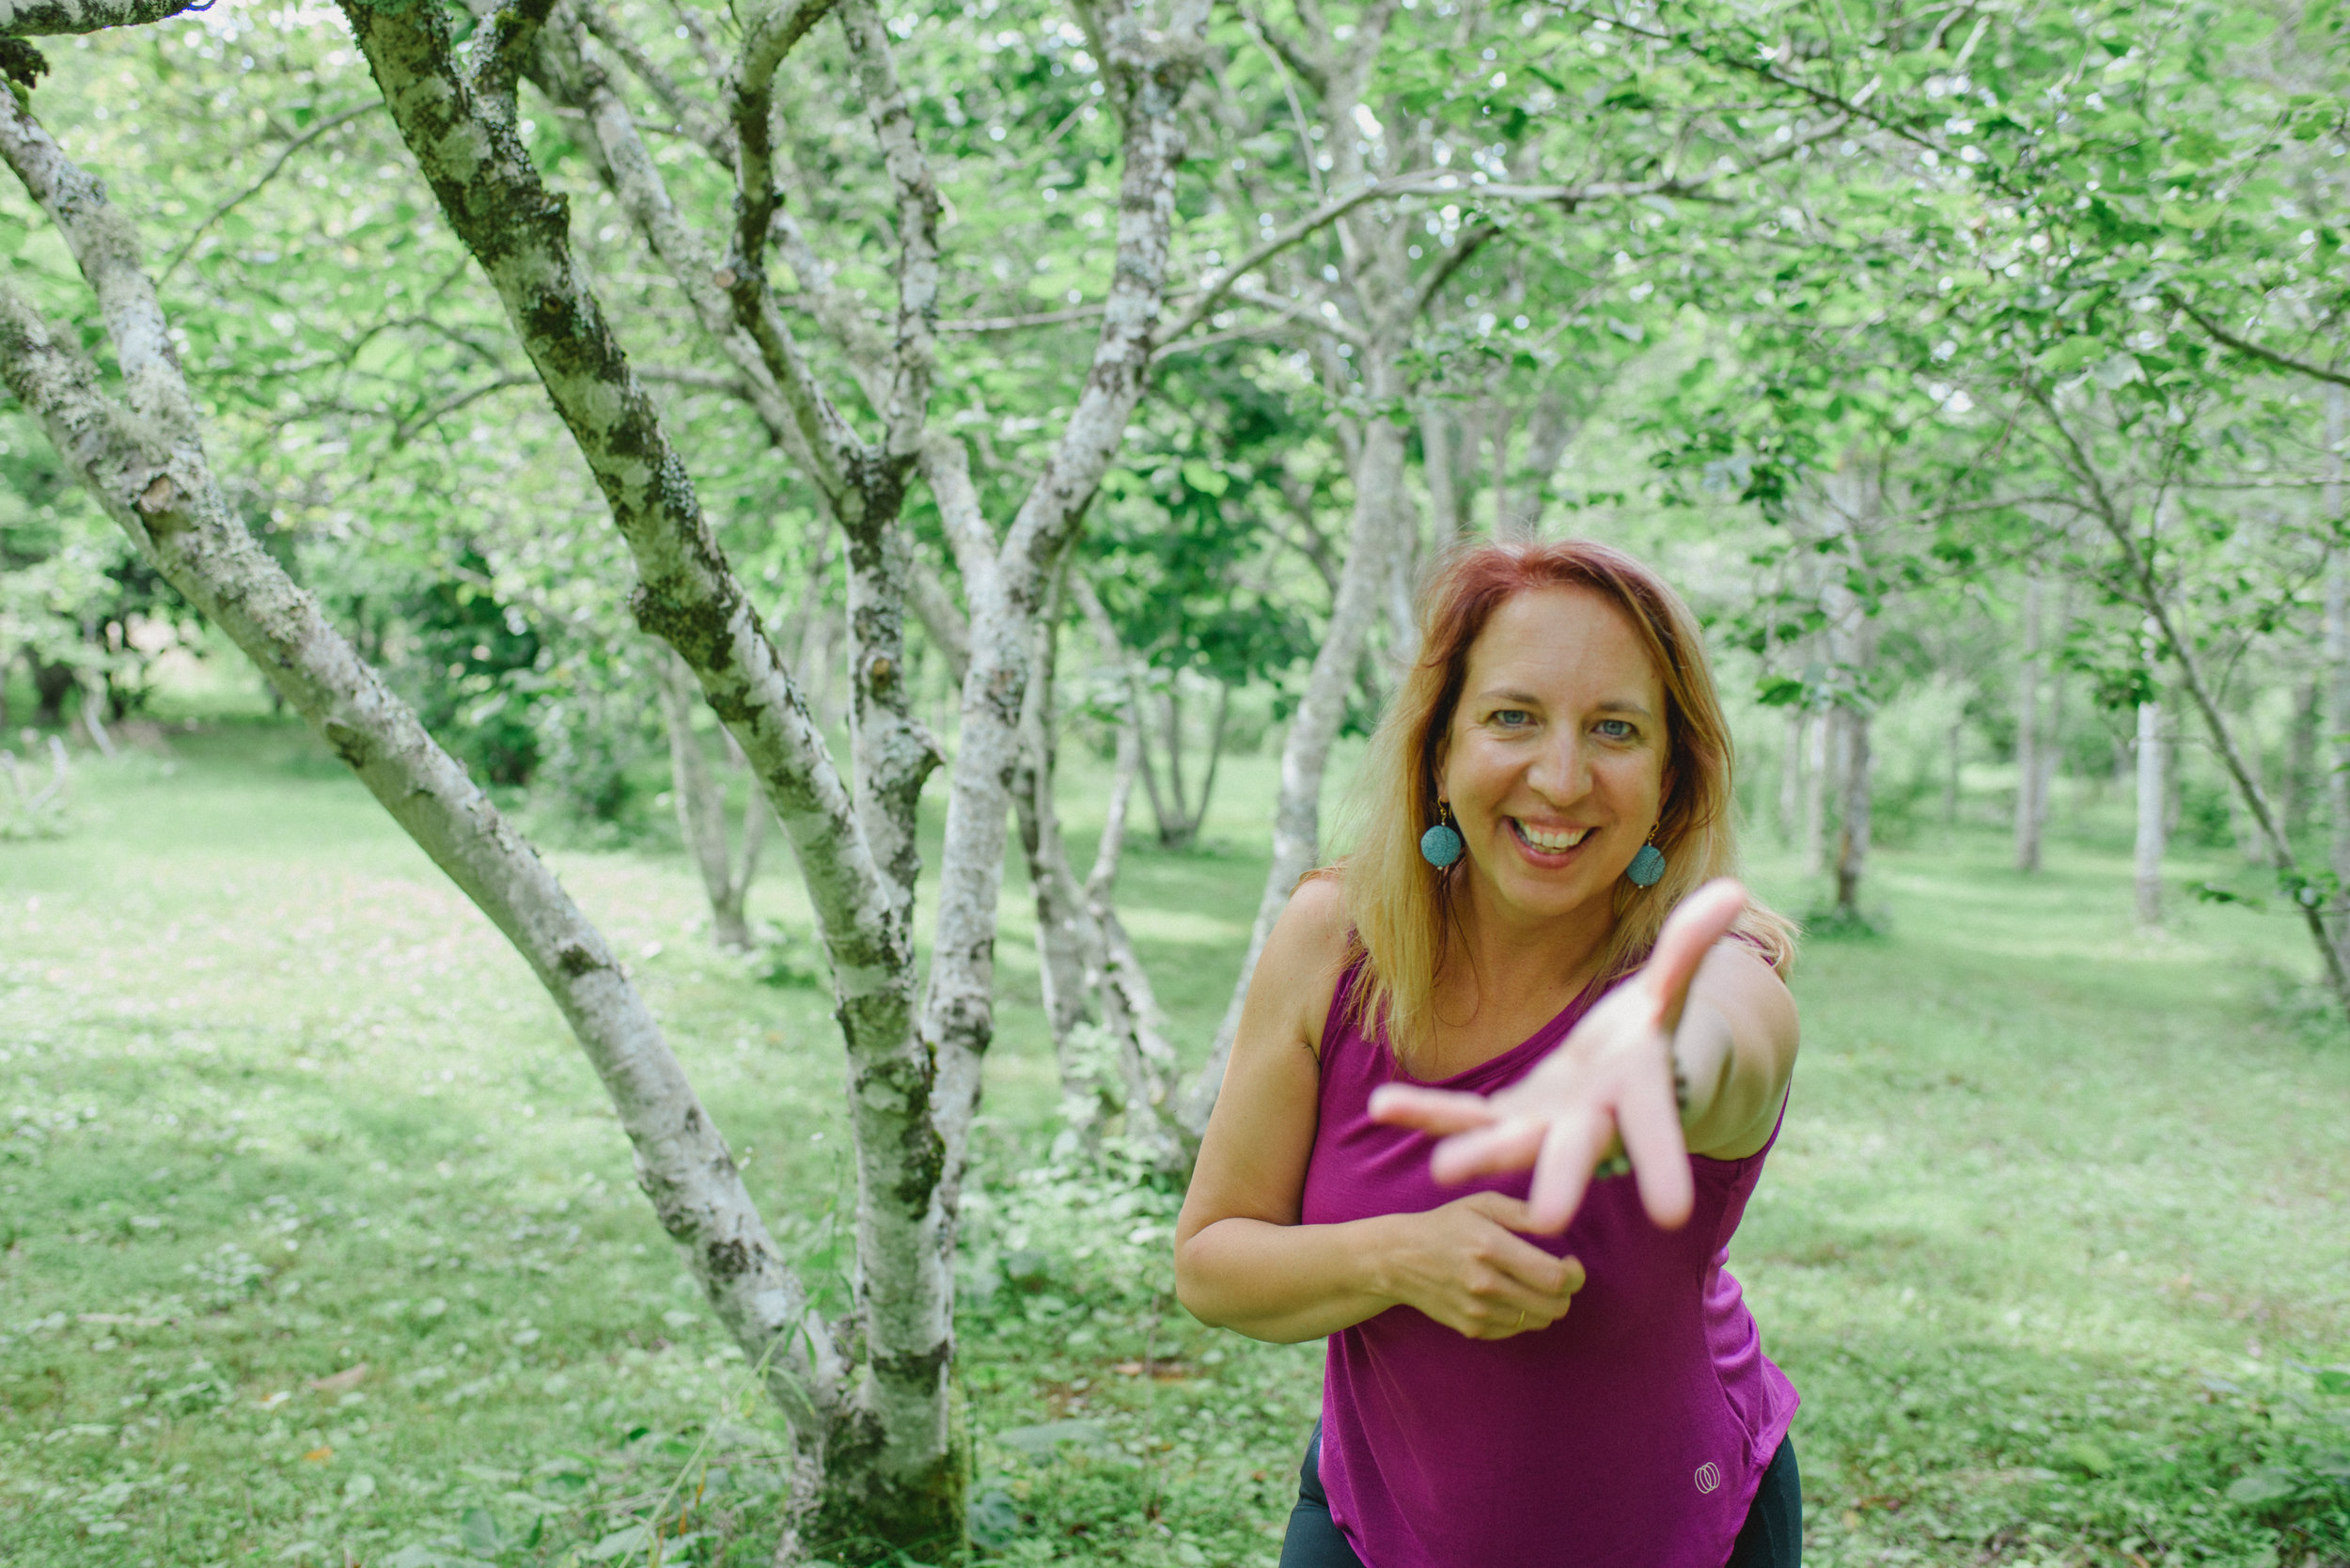 I am a visionary, healer, community builder and entrepreneur. My Nia training is deeply woven into my understanding of how moving our bodies can create healing, joy, wellbeing and connection to the thread of life. Nia inspires me to show up in my entirety, in my mind, my body and my spirit. Teaching Nia is a great gift to me. When I witness people coming home to their bodies and stepping into a bigger life that welcomes joy and authenticity, I am delighted. I can't wait to see you on the dance floor.